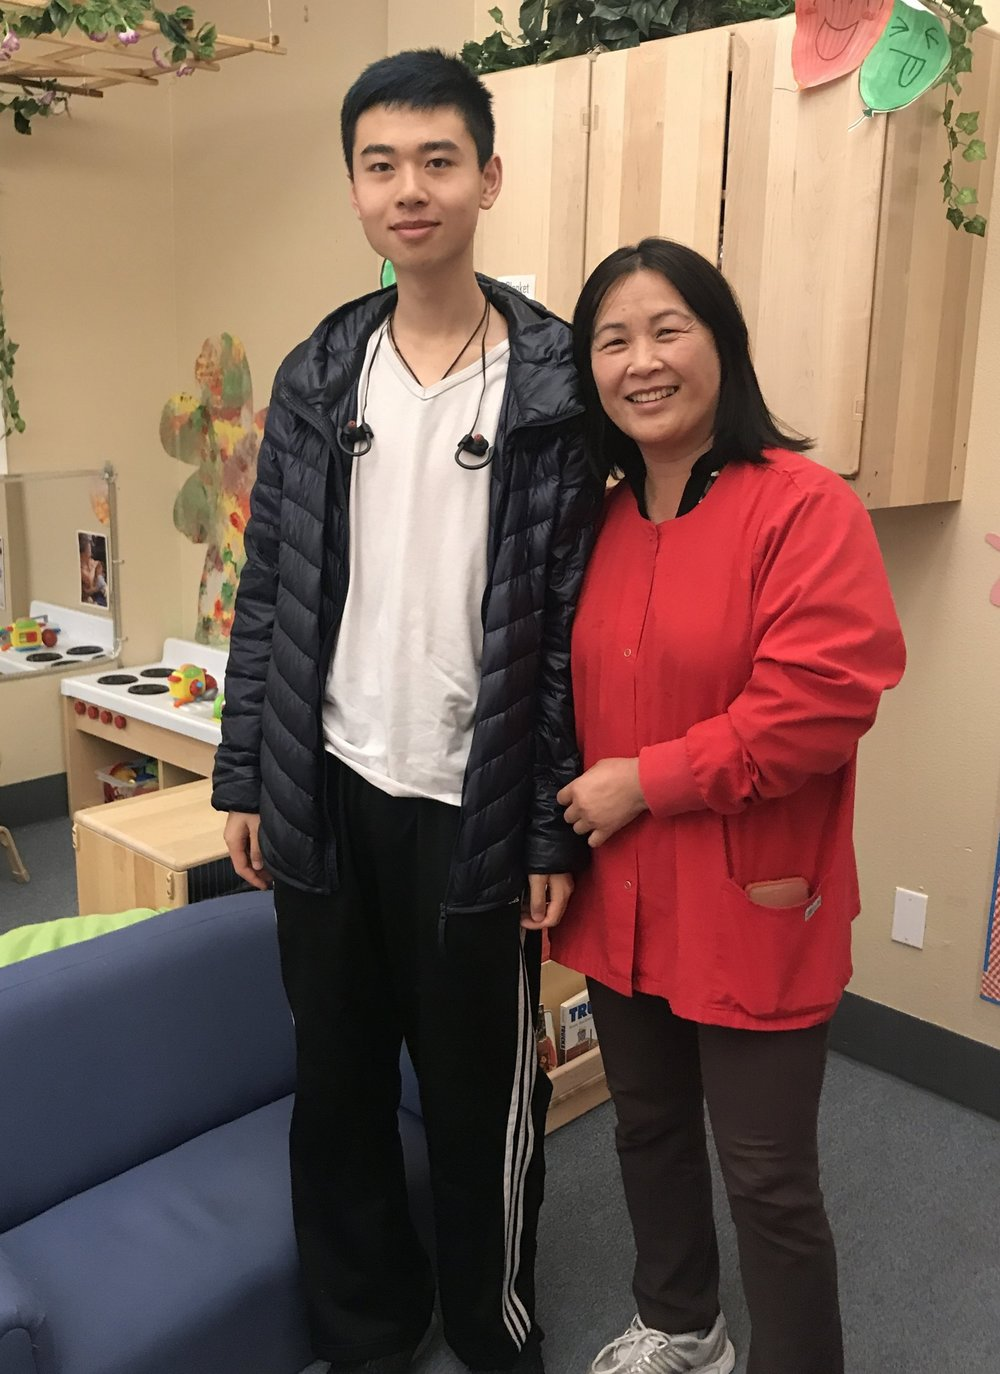 Brian and his former teacher, Sara Yang